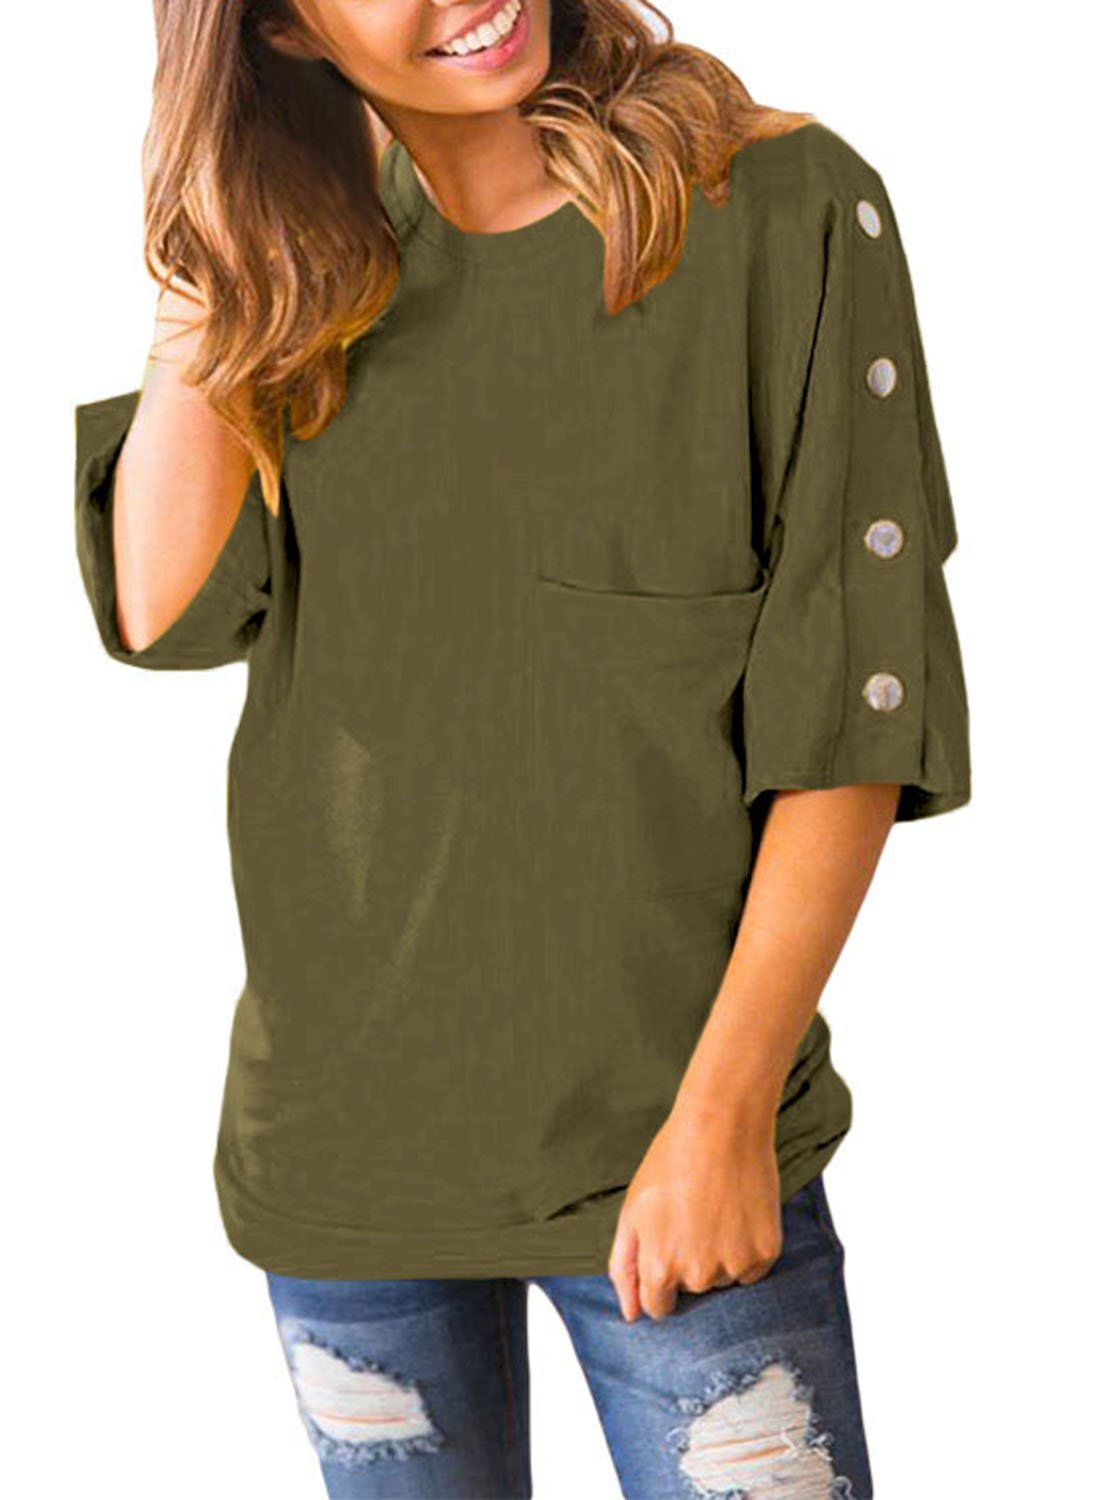 Azokoe 2018 Fashion Autumn 3/4 Sleeves Shirts Women Summer Tunic Tops Pocket Solid Color Buttons Crew Neck Army Green Plus Size 2XL